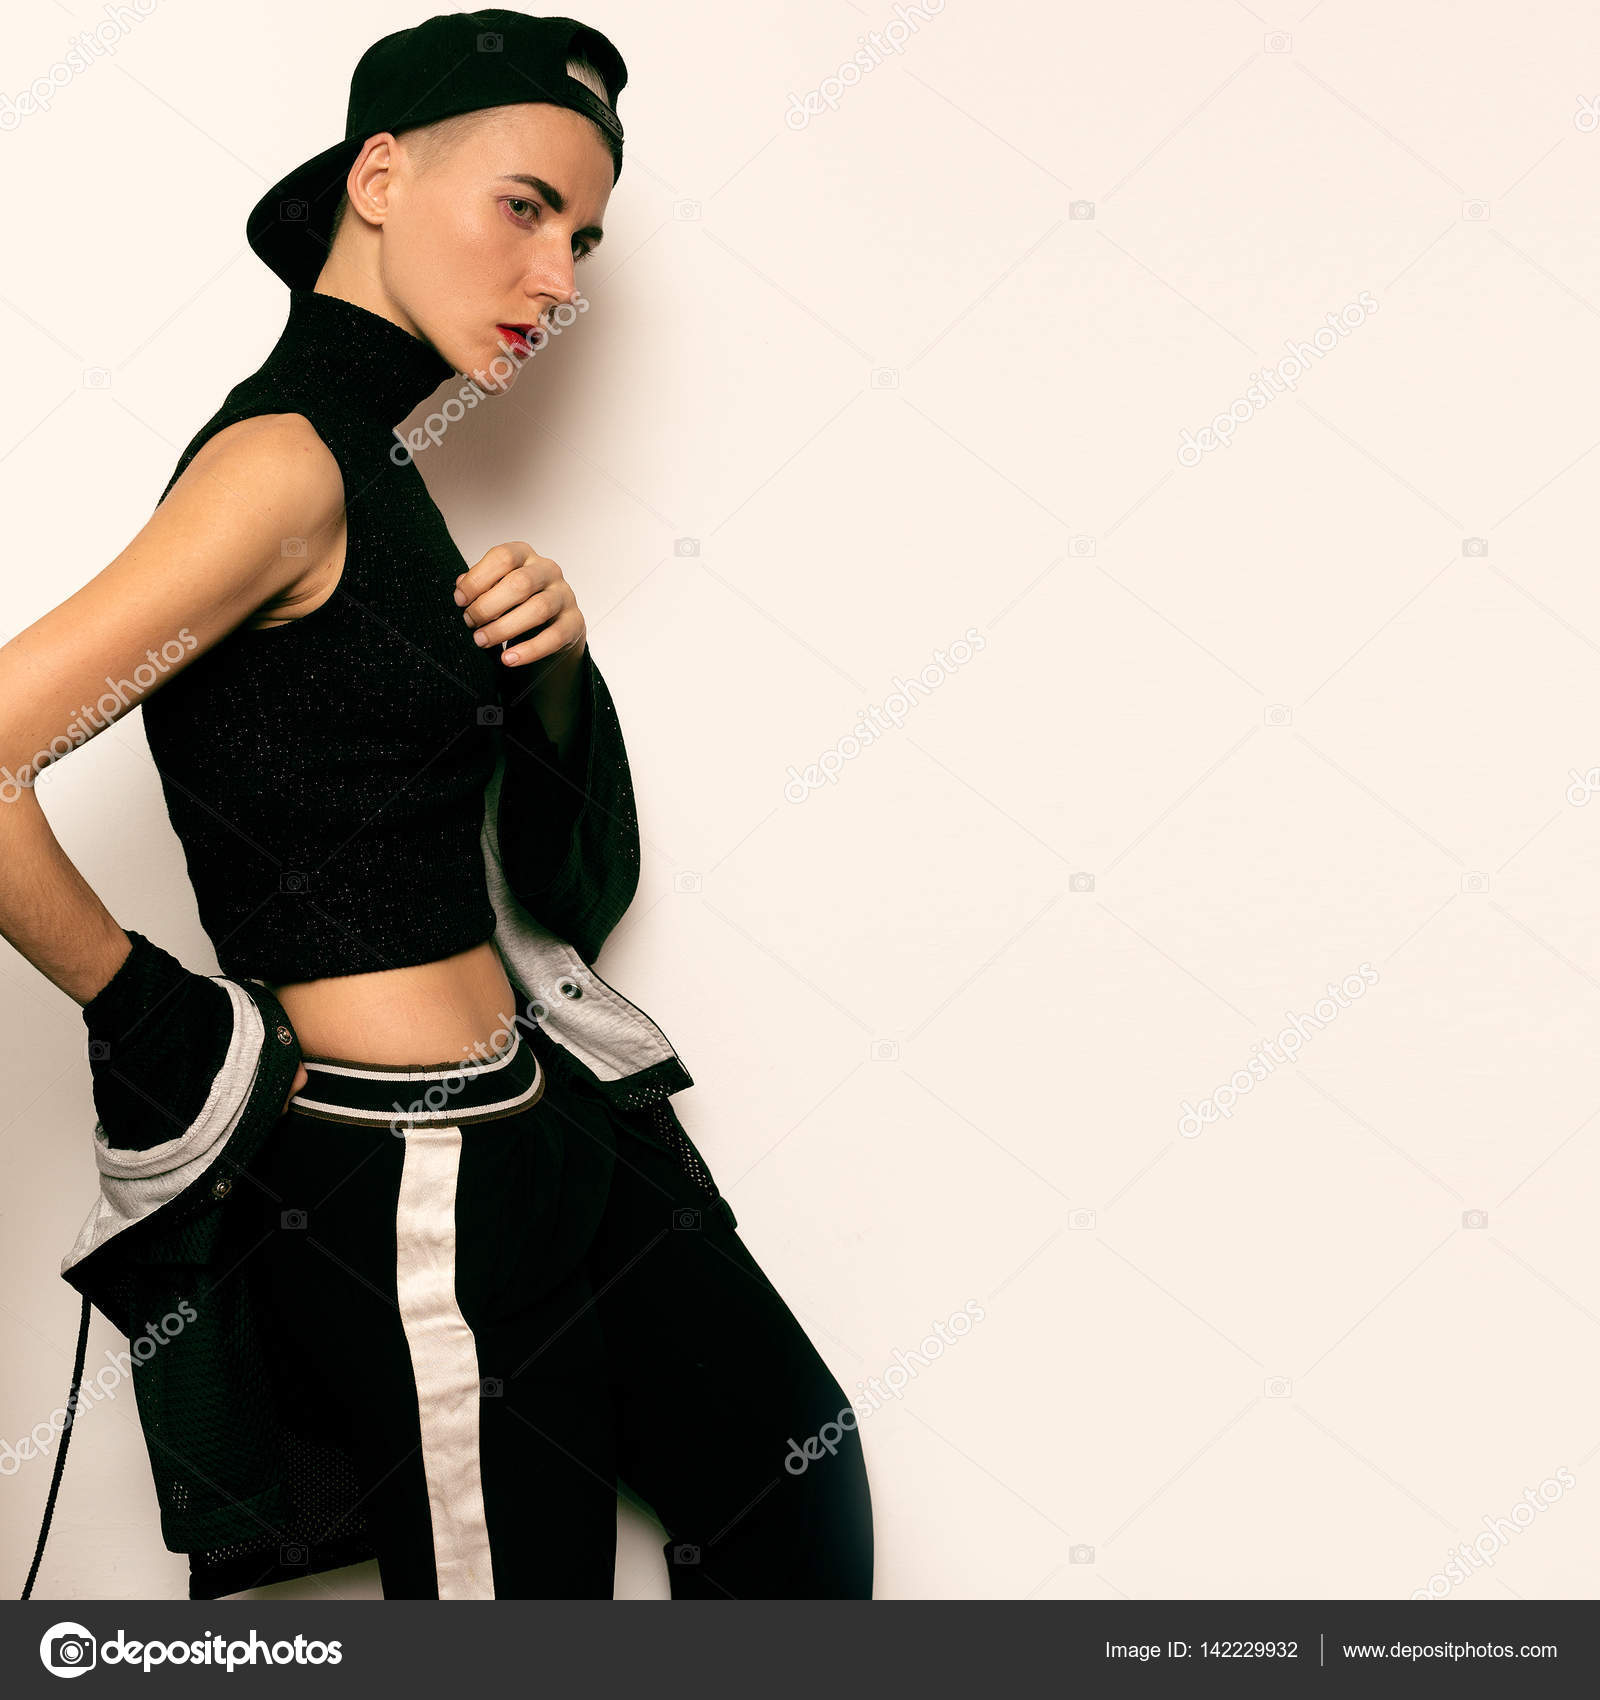 Tomboy Girl Model Style Urban Outfit Dance Hip Hop Clothing Stock Photo